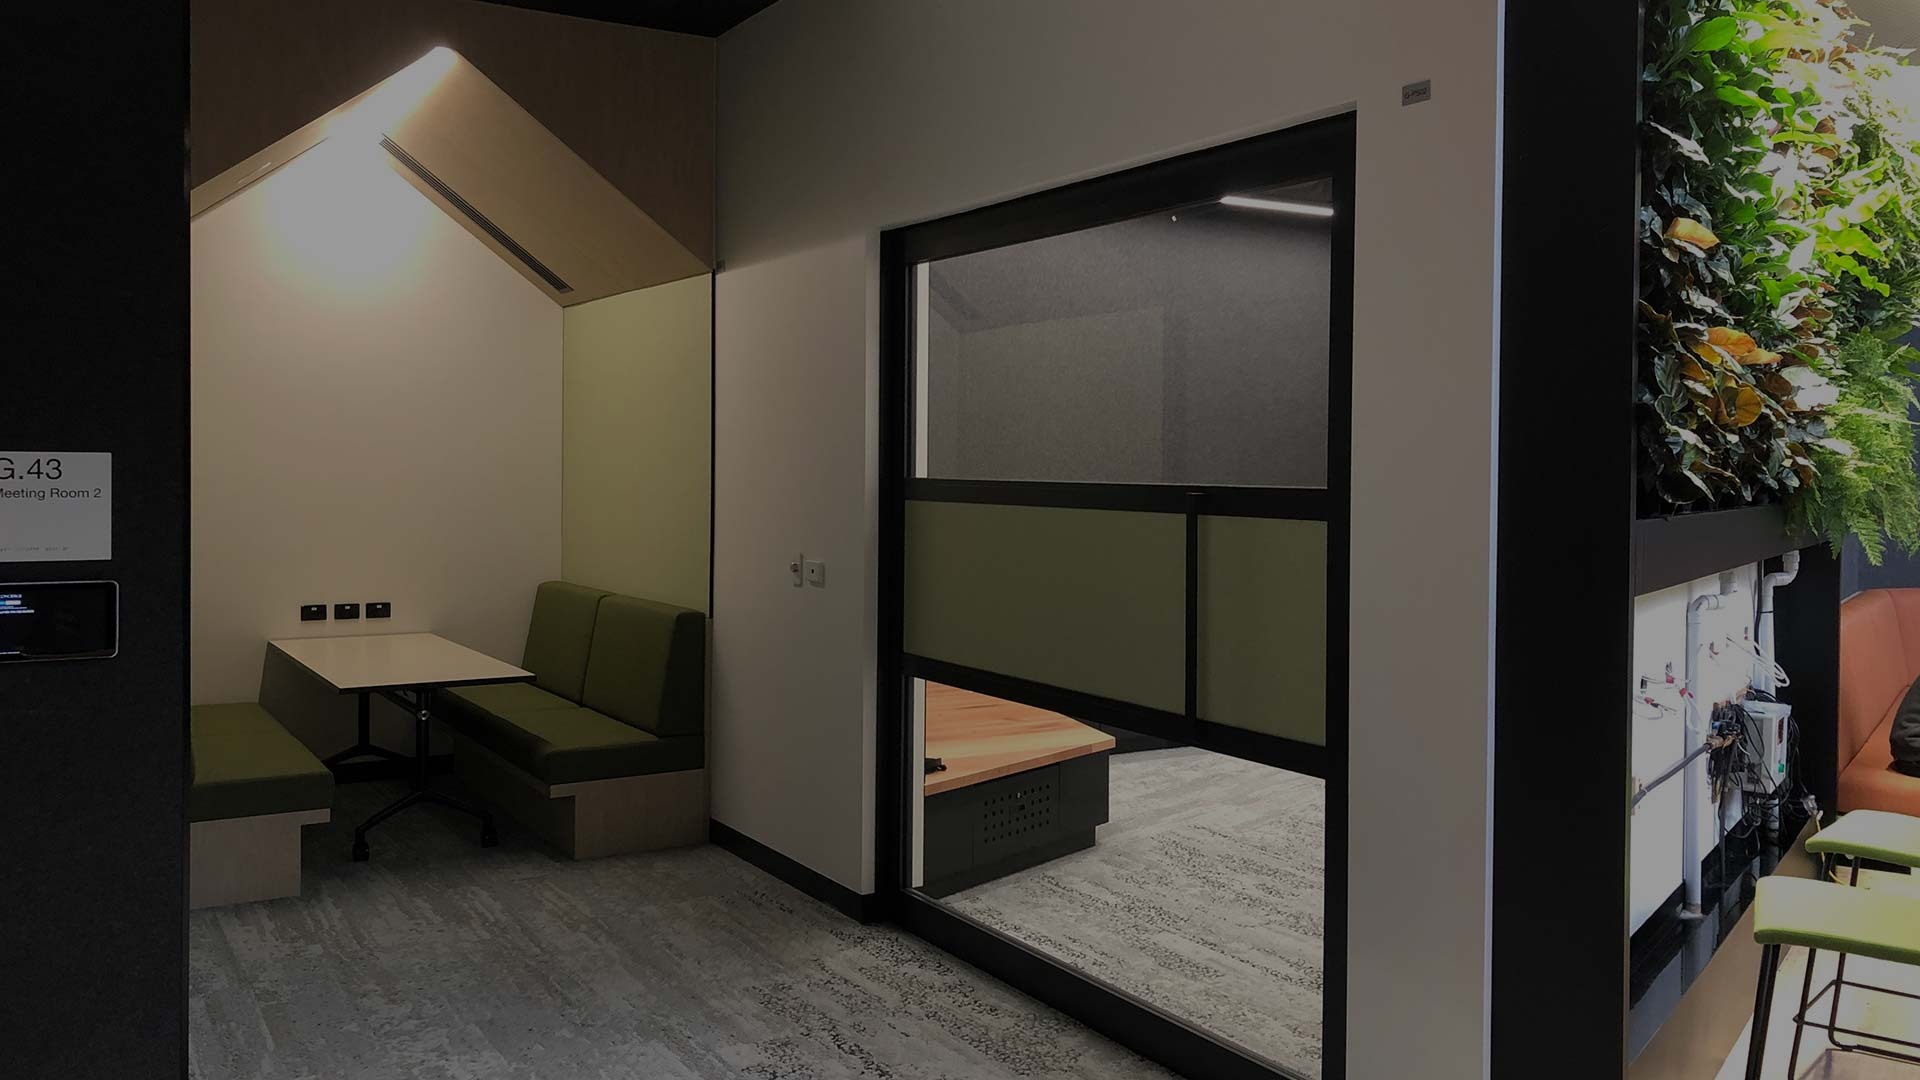 image of acoustic sliding door system with Rw32 rating